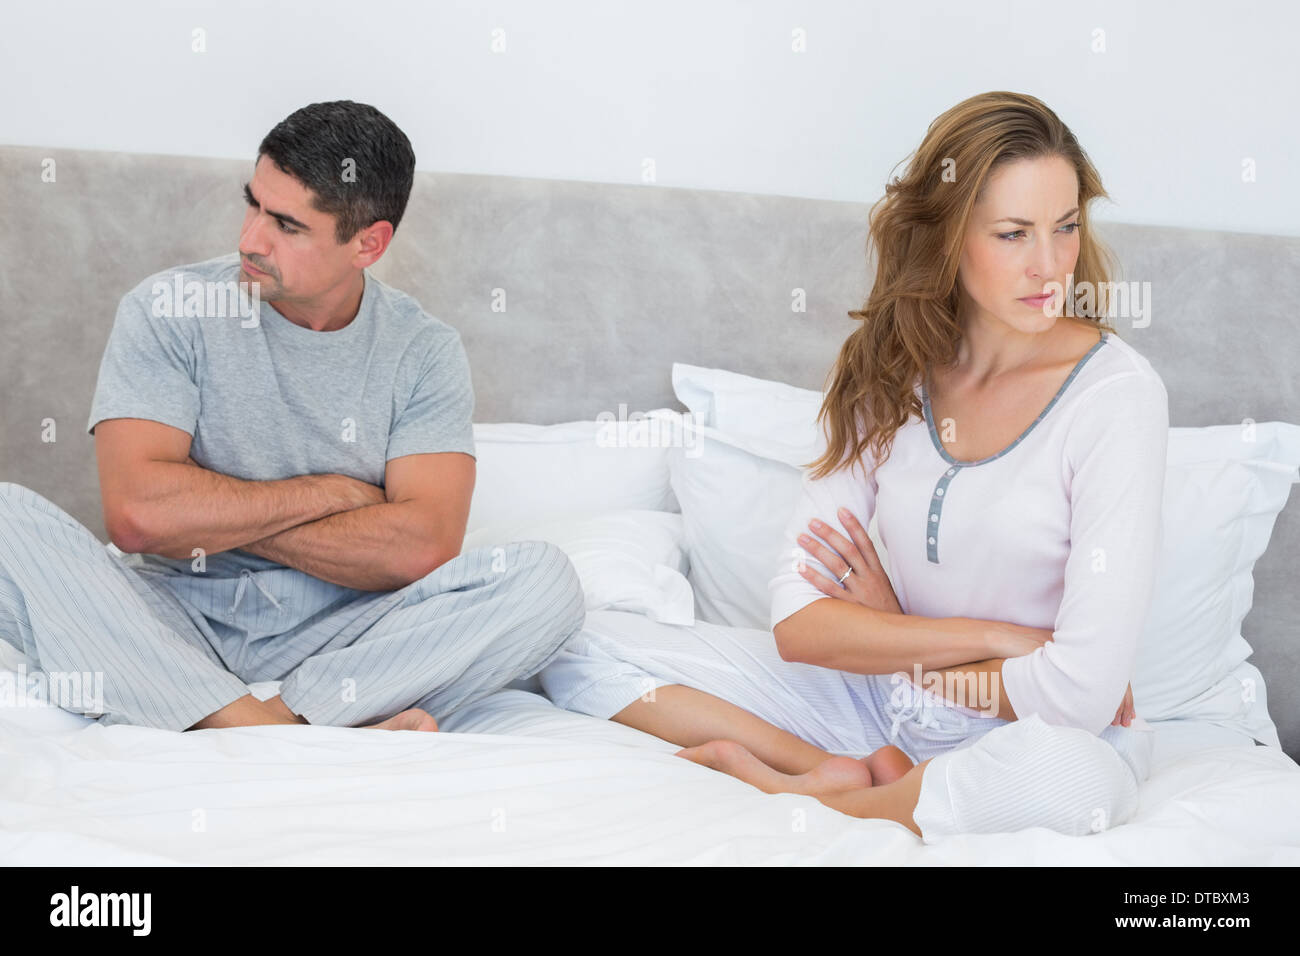 Couple ignoring each other - Stock Image